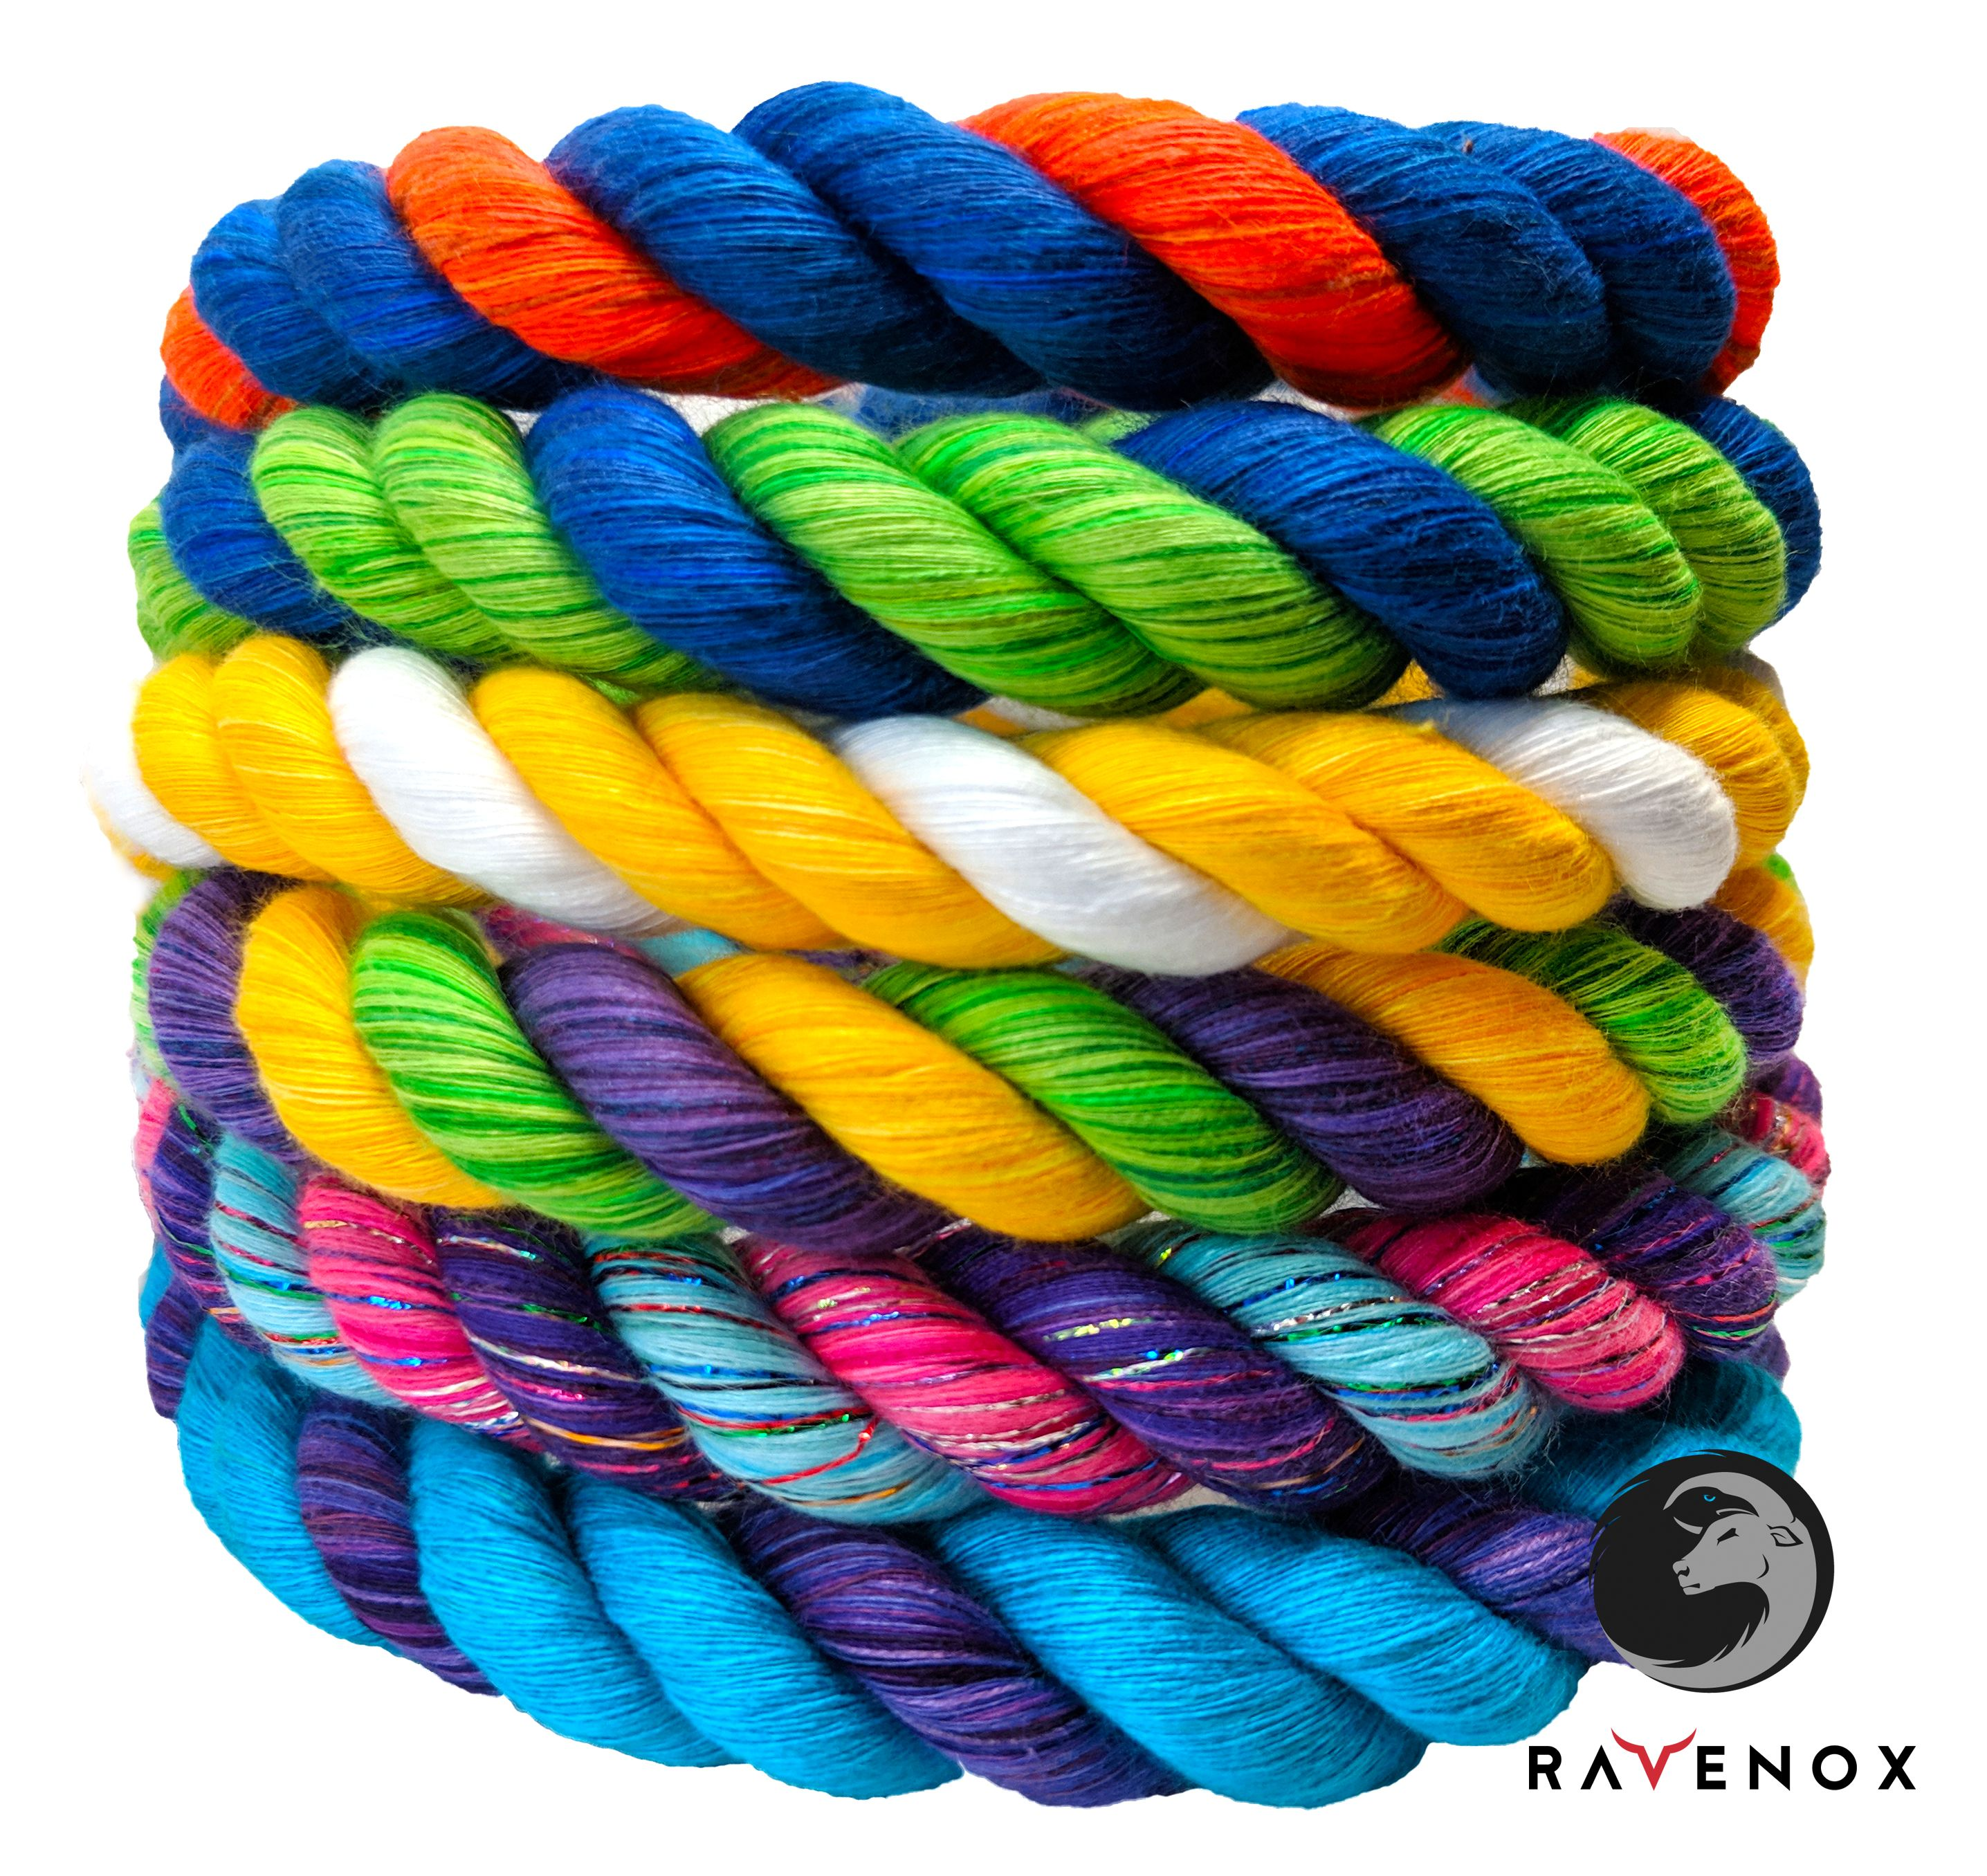 Design Your Own Custom Cotton Rope How To Make Rope Cotton Rope Custom Color